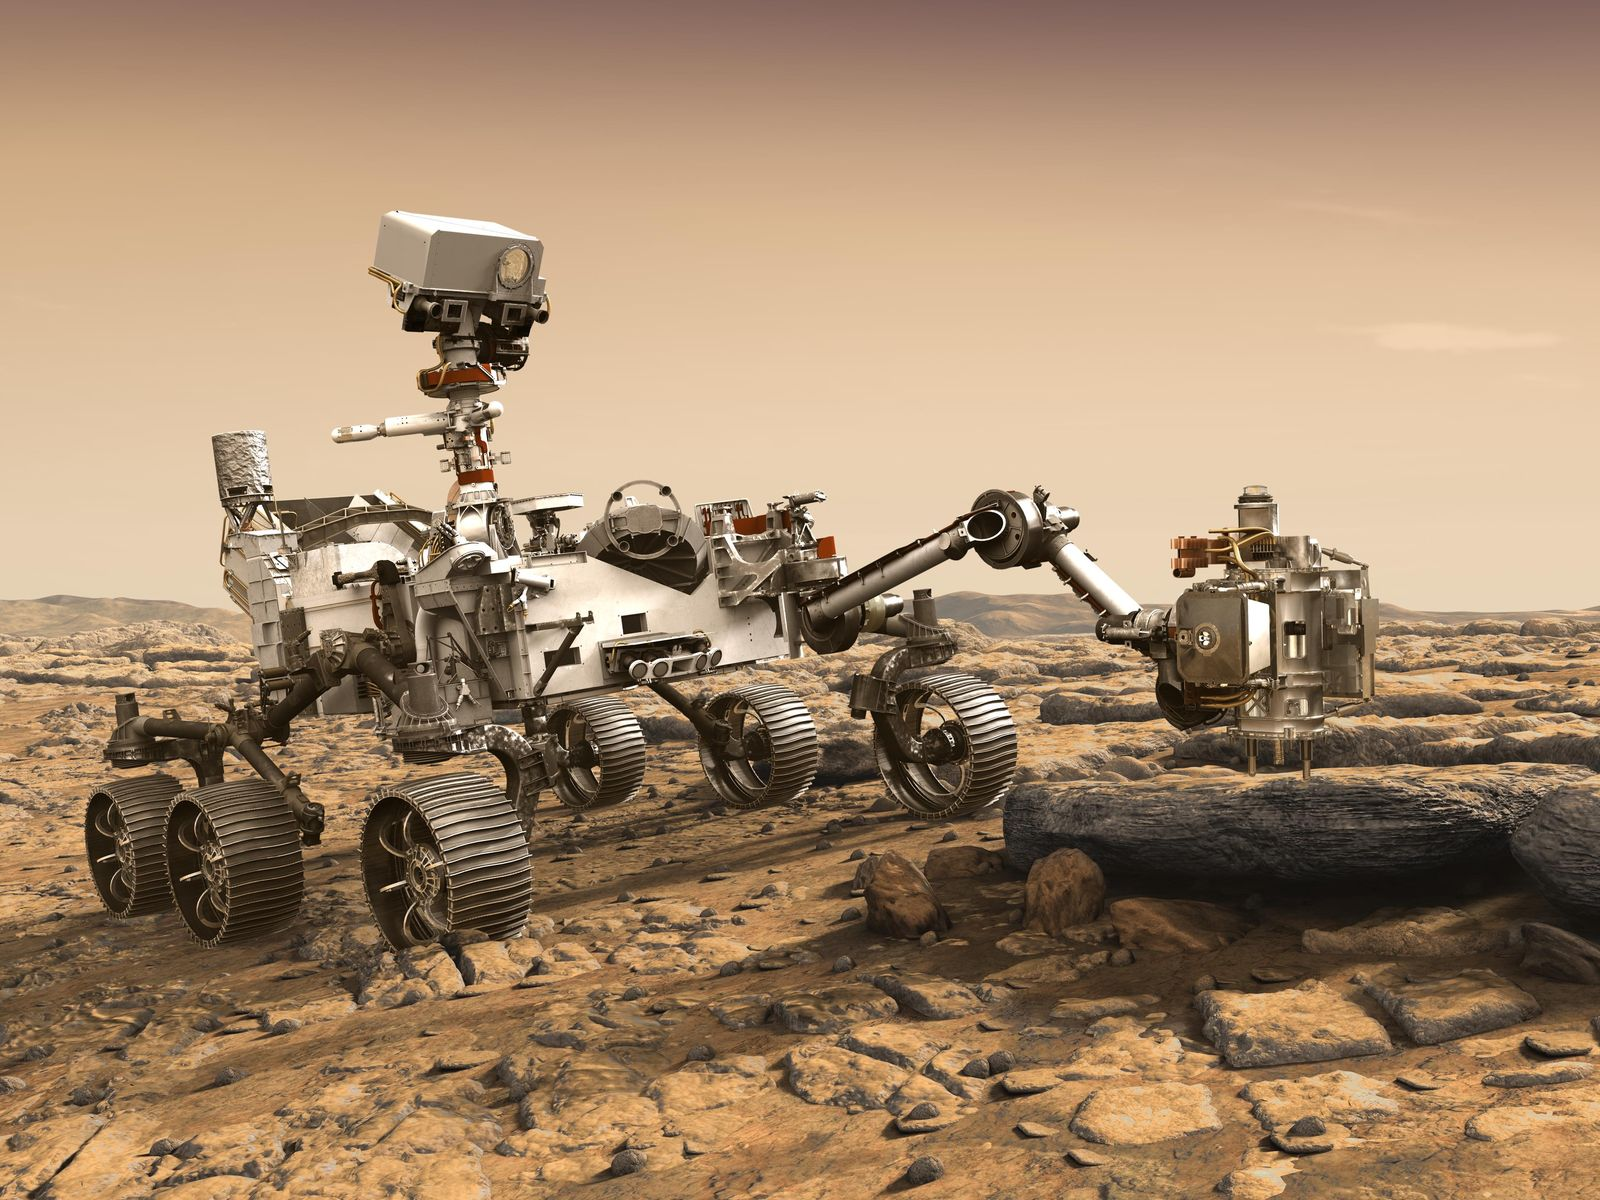 NASA plans 'souped-up' rover for Mars 2020 mission ...